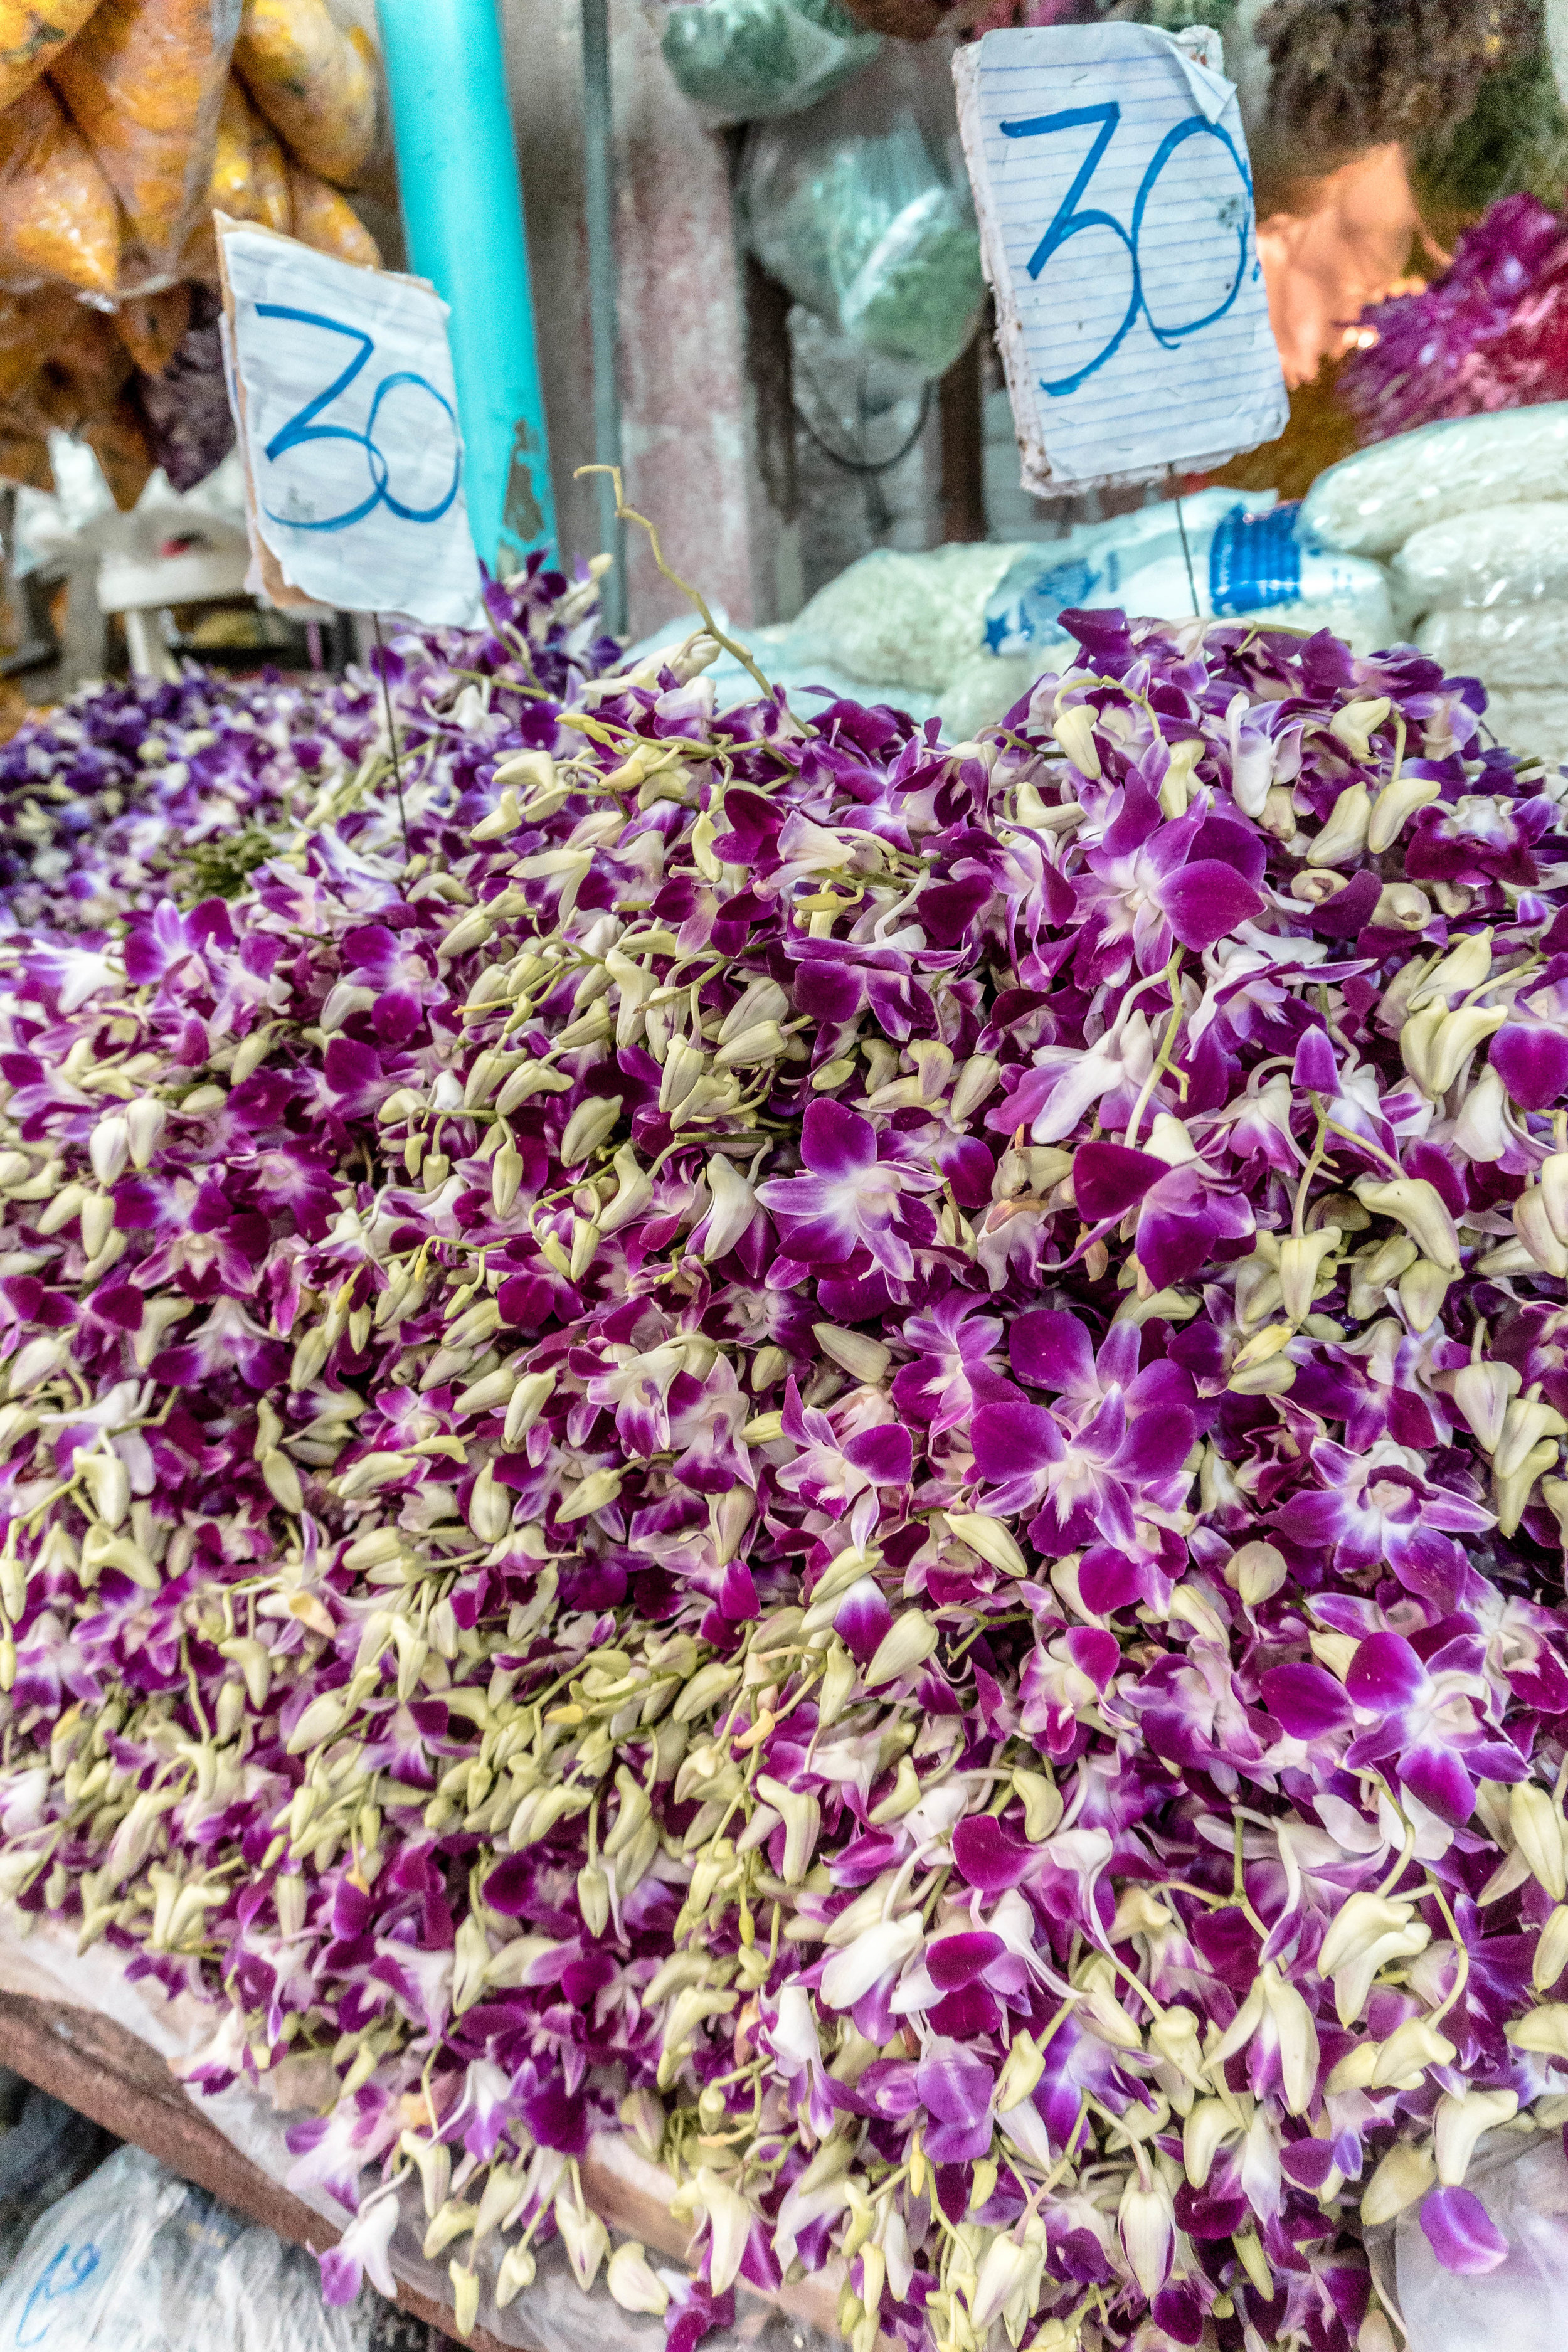 FLOWERS AT THE FLOWER MARKET NEXT DOOR TO THE ONION HOSTEL